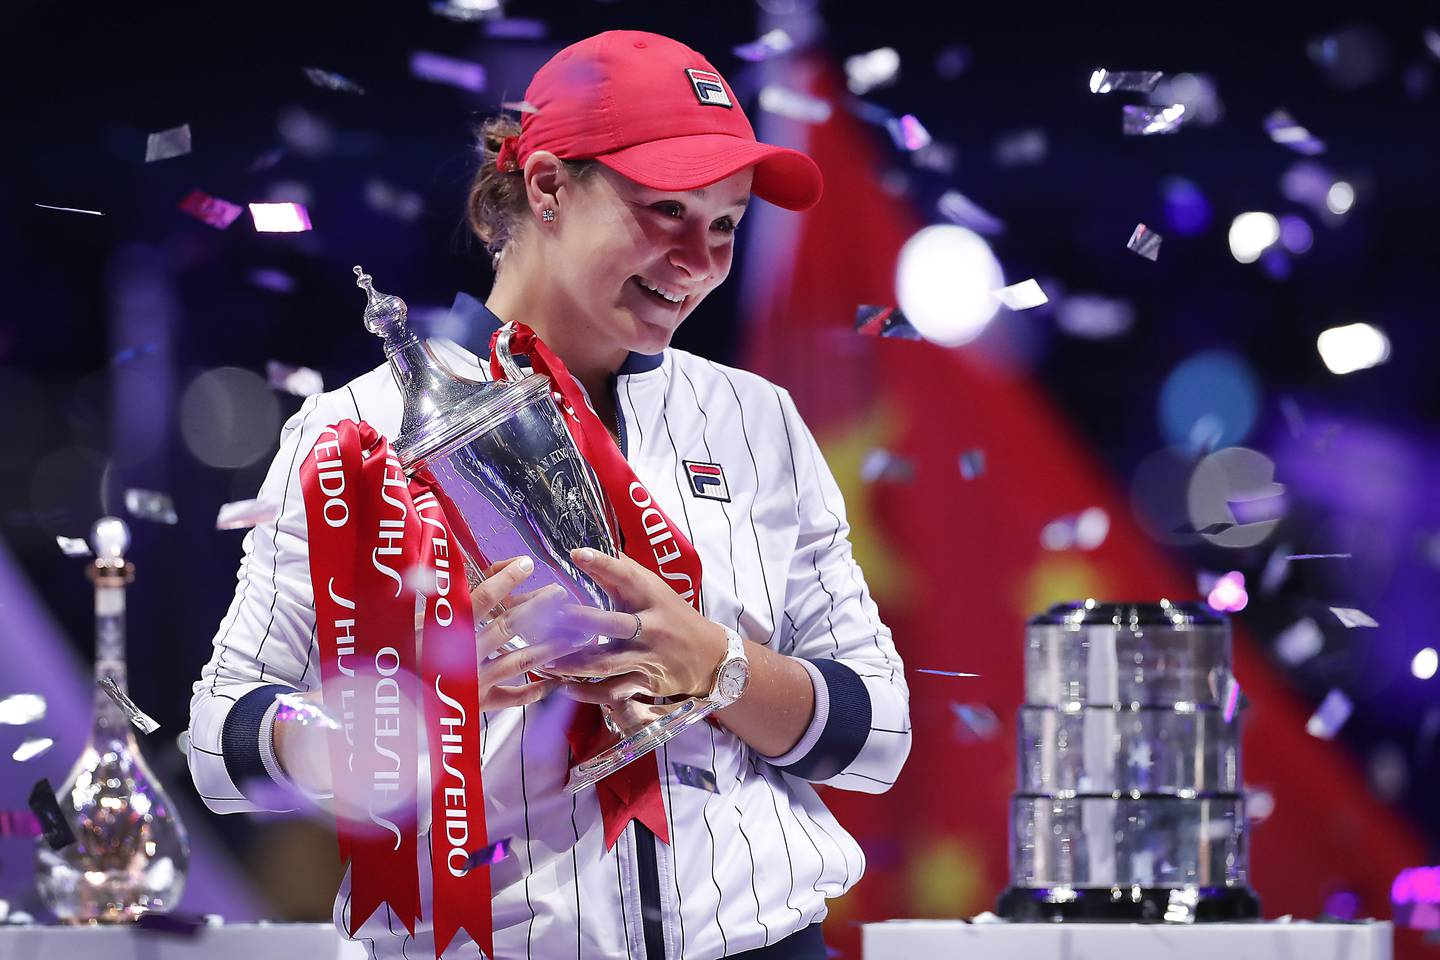 Ashleigh Barty of Australia holds her trophy while being showered by confetti after winning the WTA Finals Tennis Tournament against Elina Svitolina of Ukraine at the Shenzhen Bay Sports Center in Shenzhen, China's Guangdong province, Sunday, Nov. 3, 2019. (AP Photo/Andy Wong)